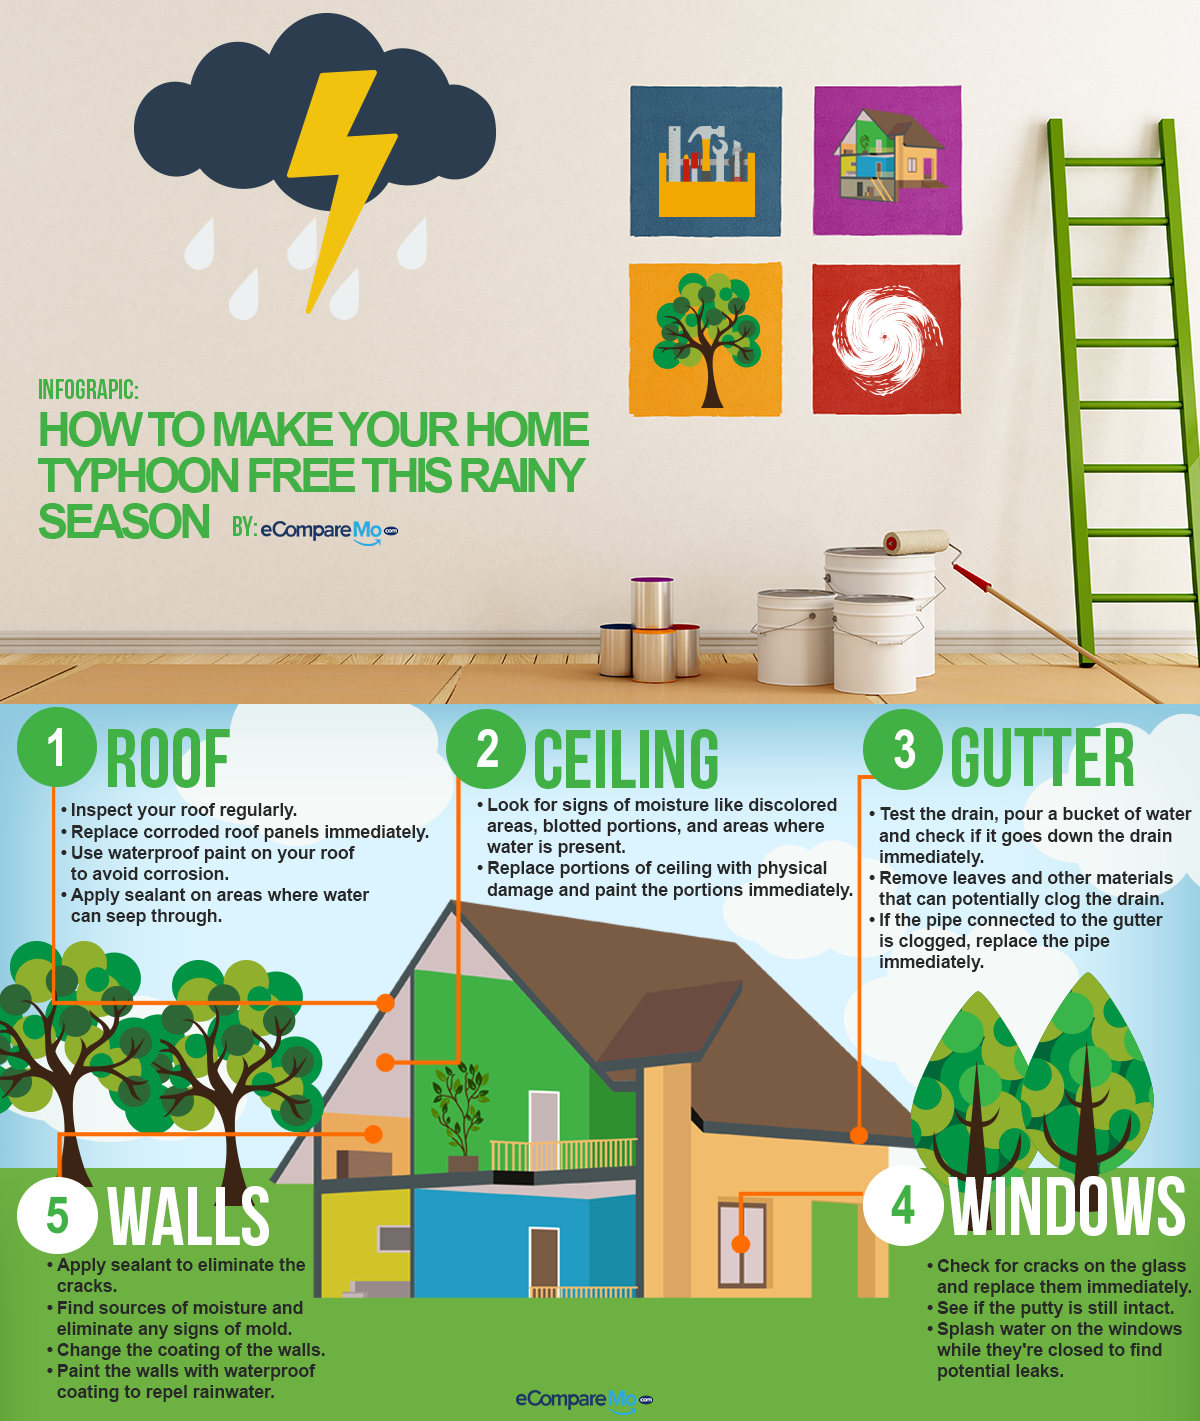 INFOGRAPHIC: How to Make Your Home Typhoon Free This Rainy Season?